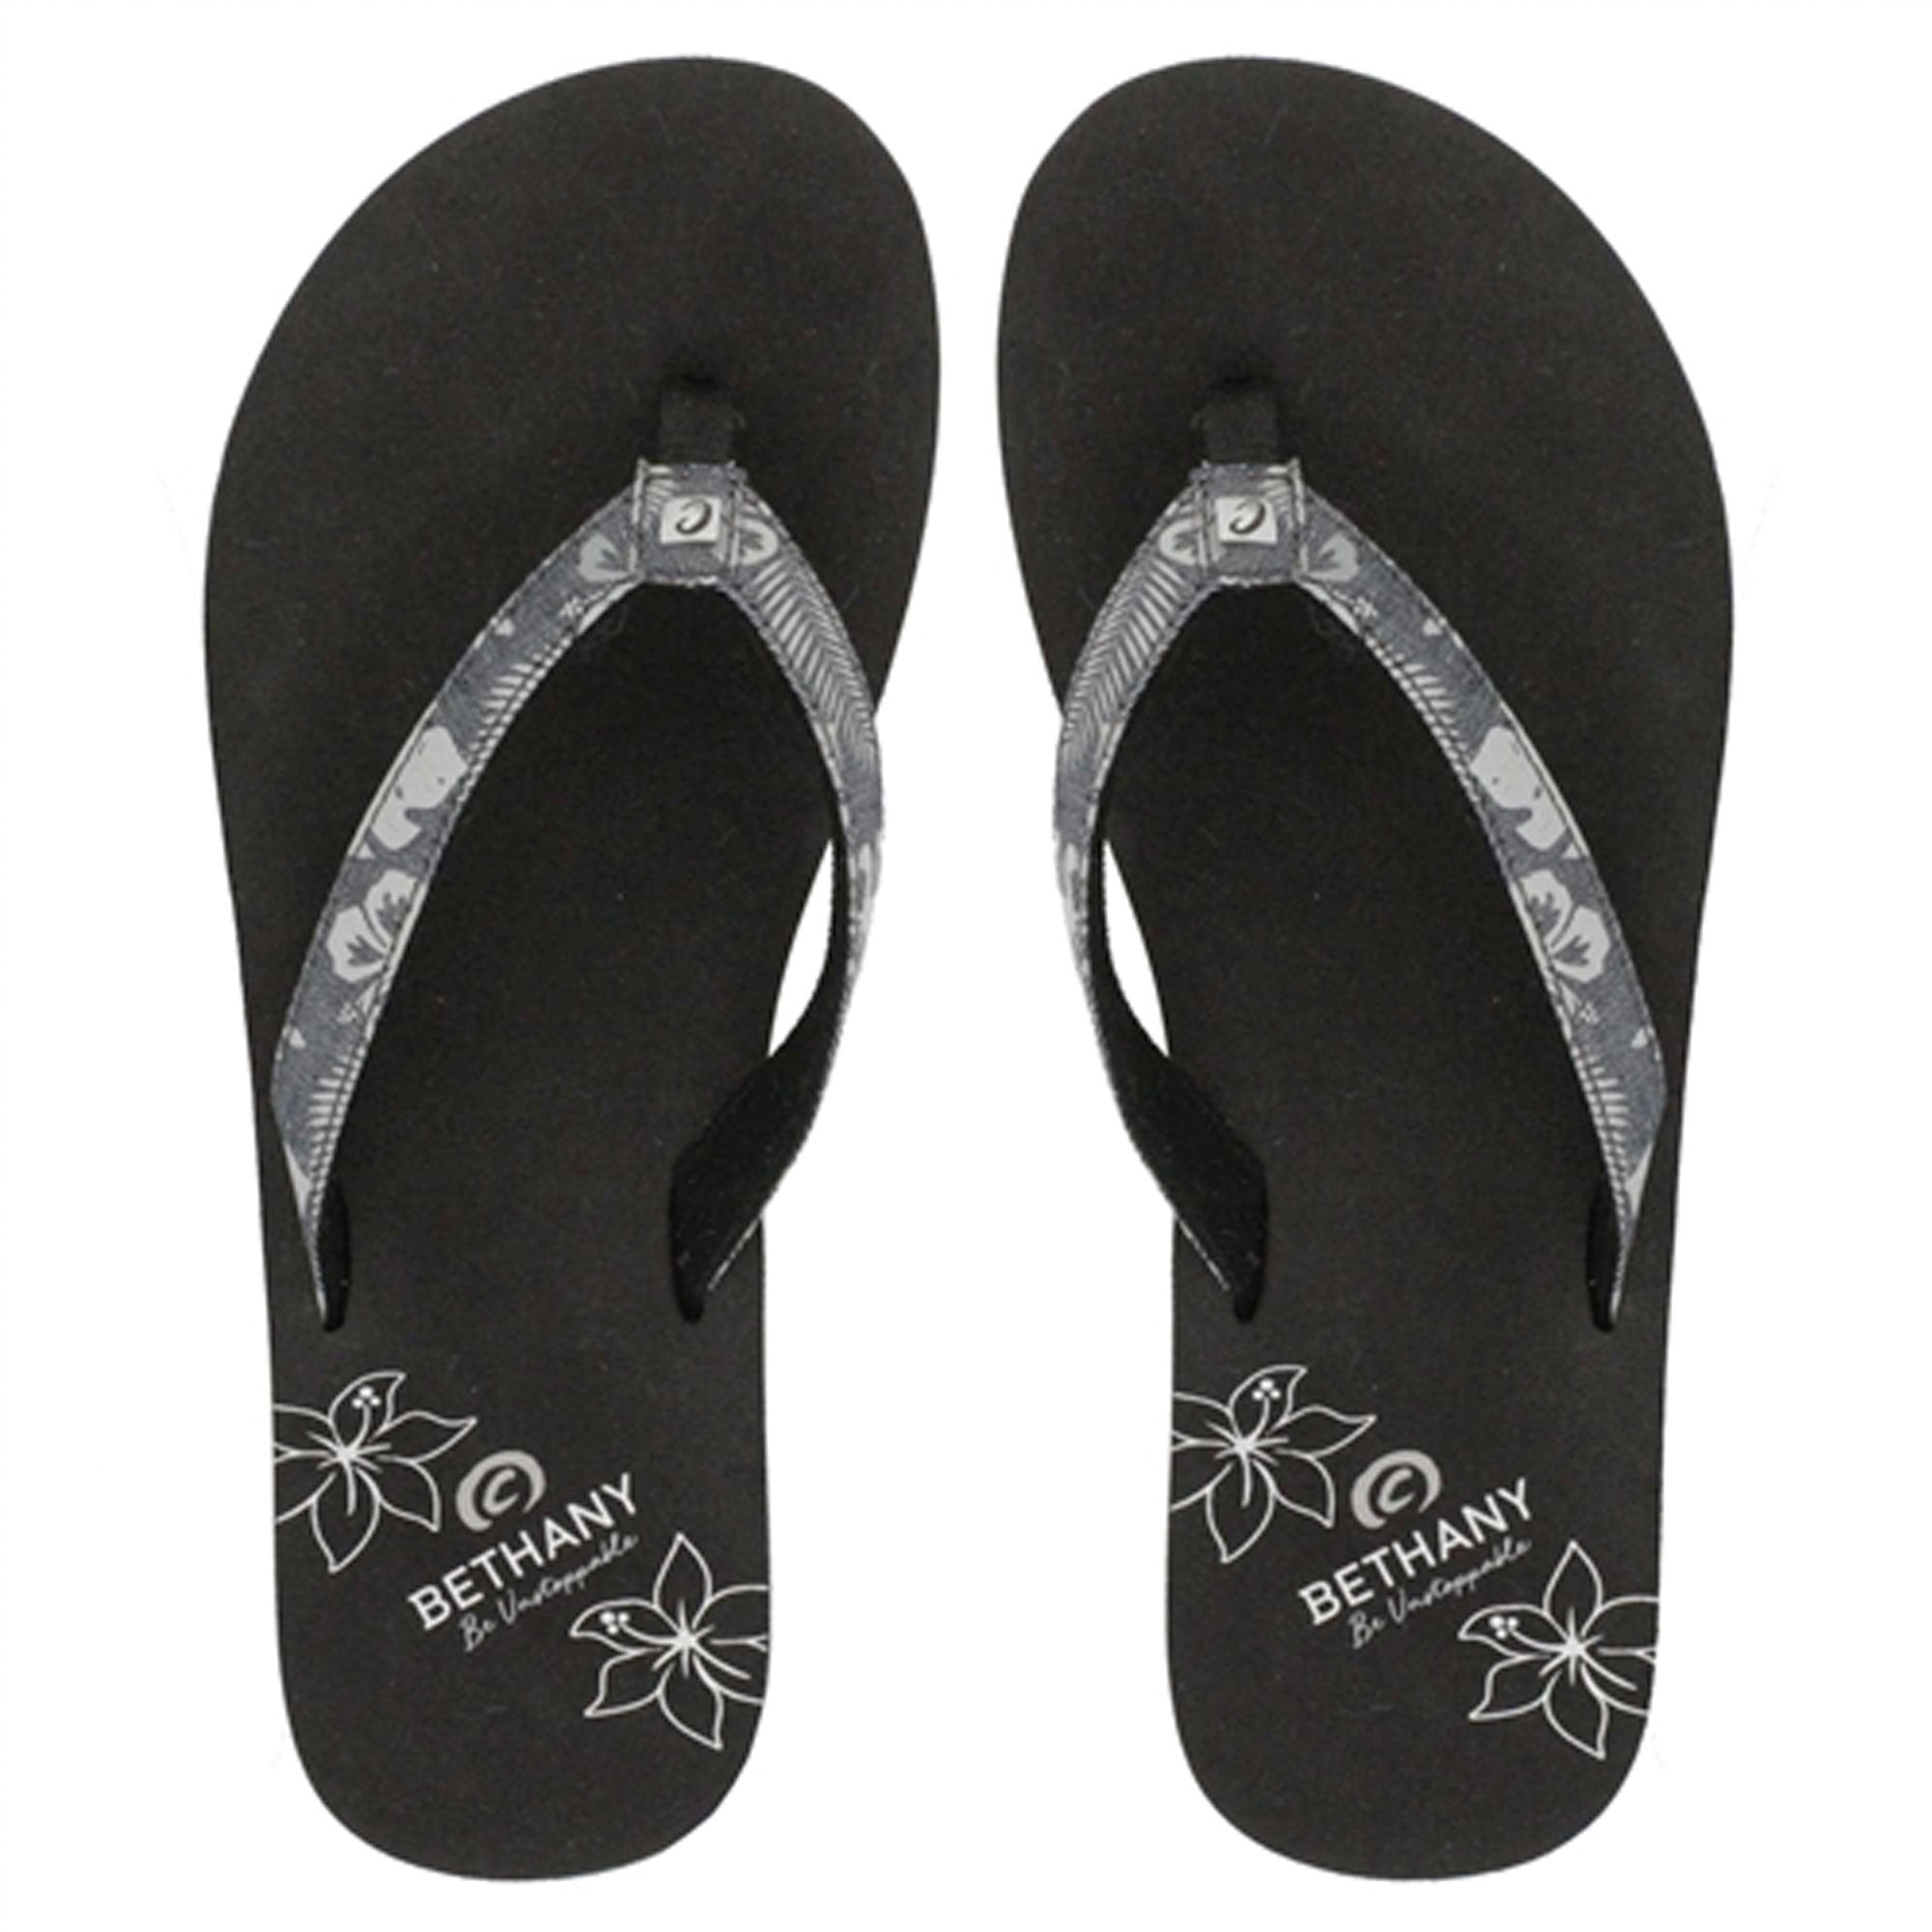 Cobian Bethany Tradewinds Women's Sandals